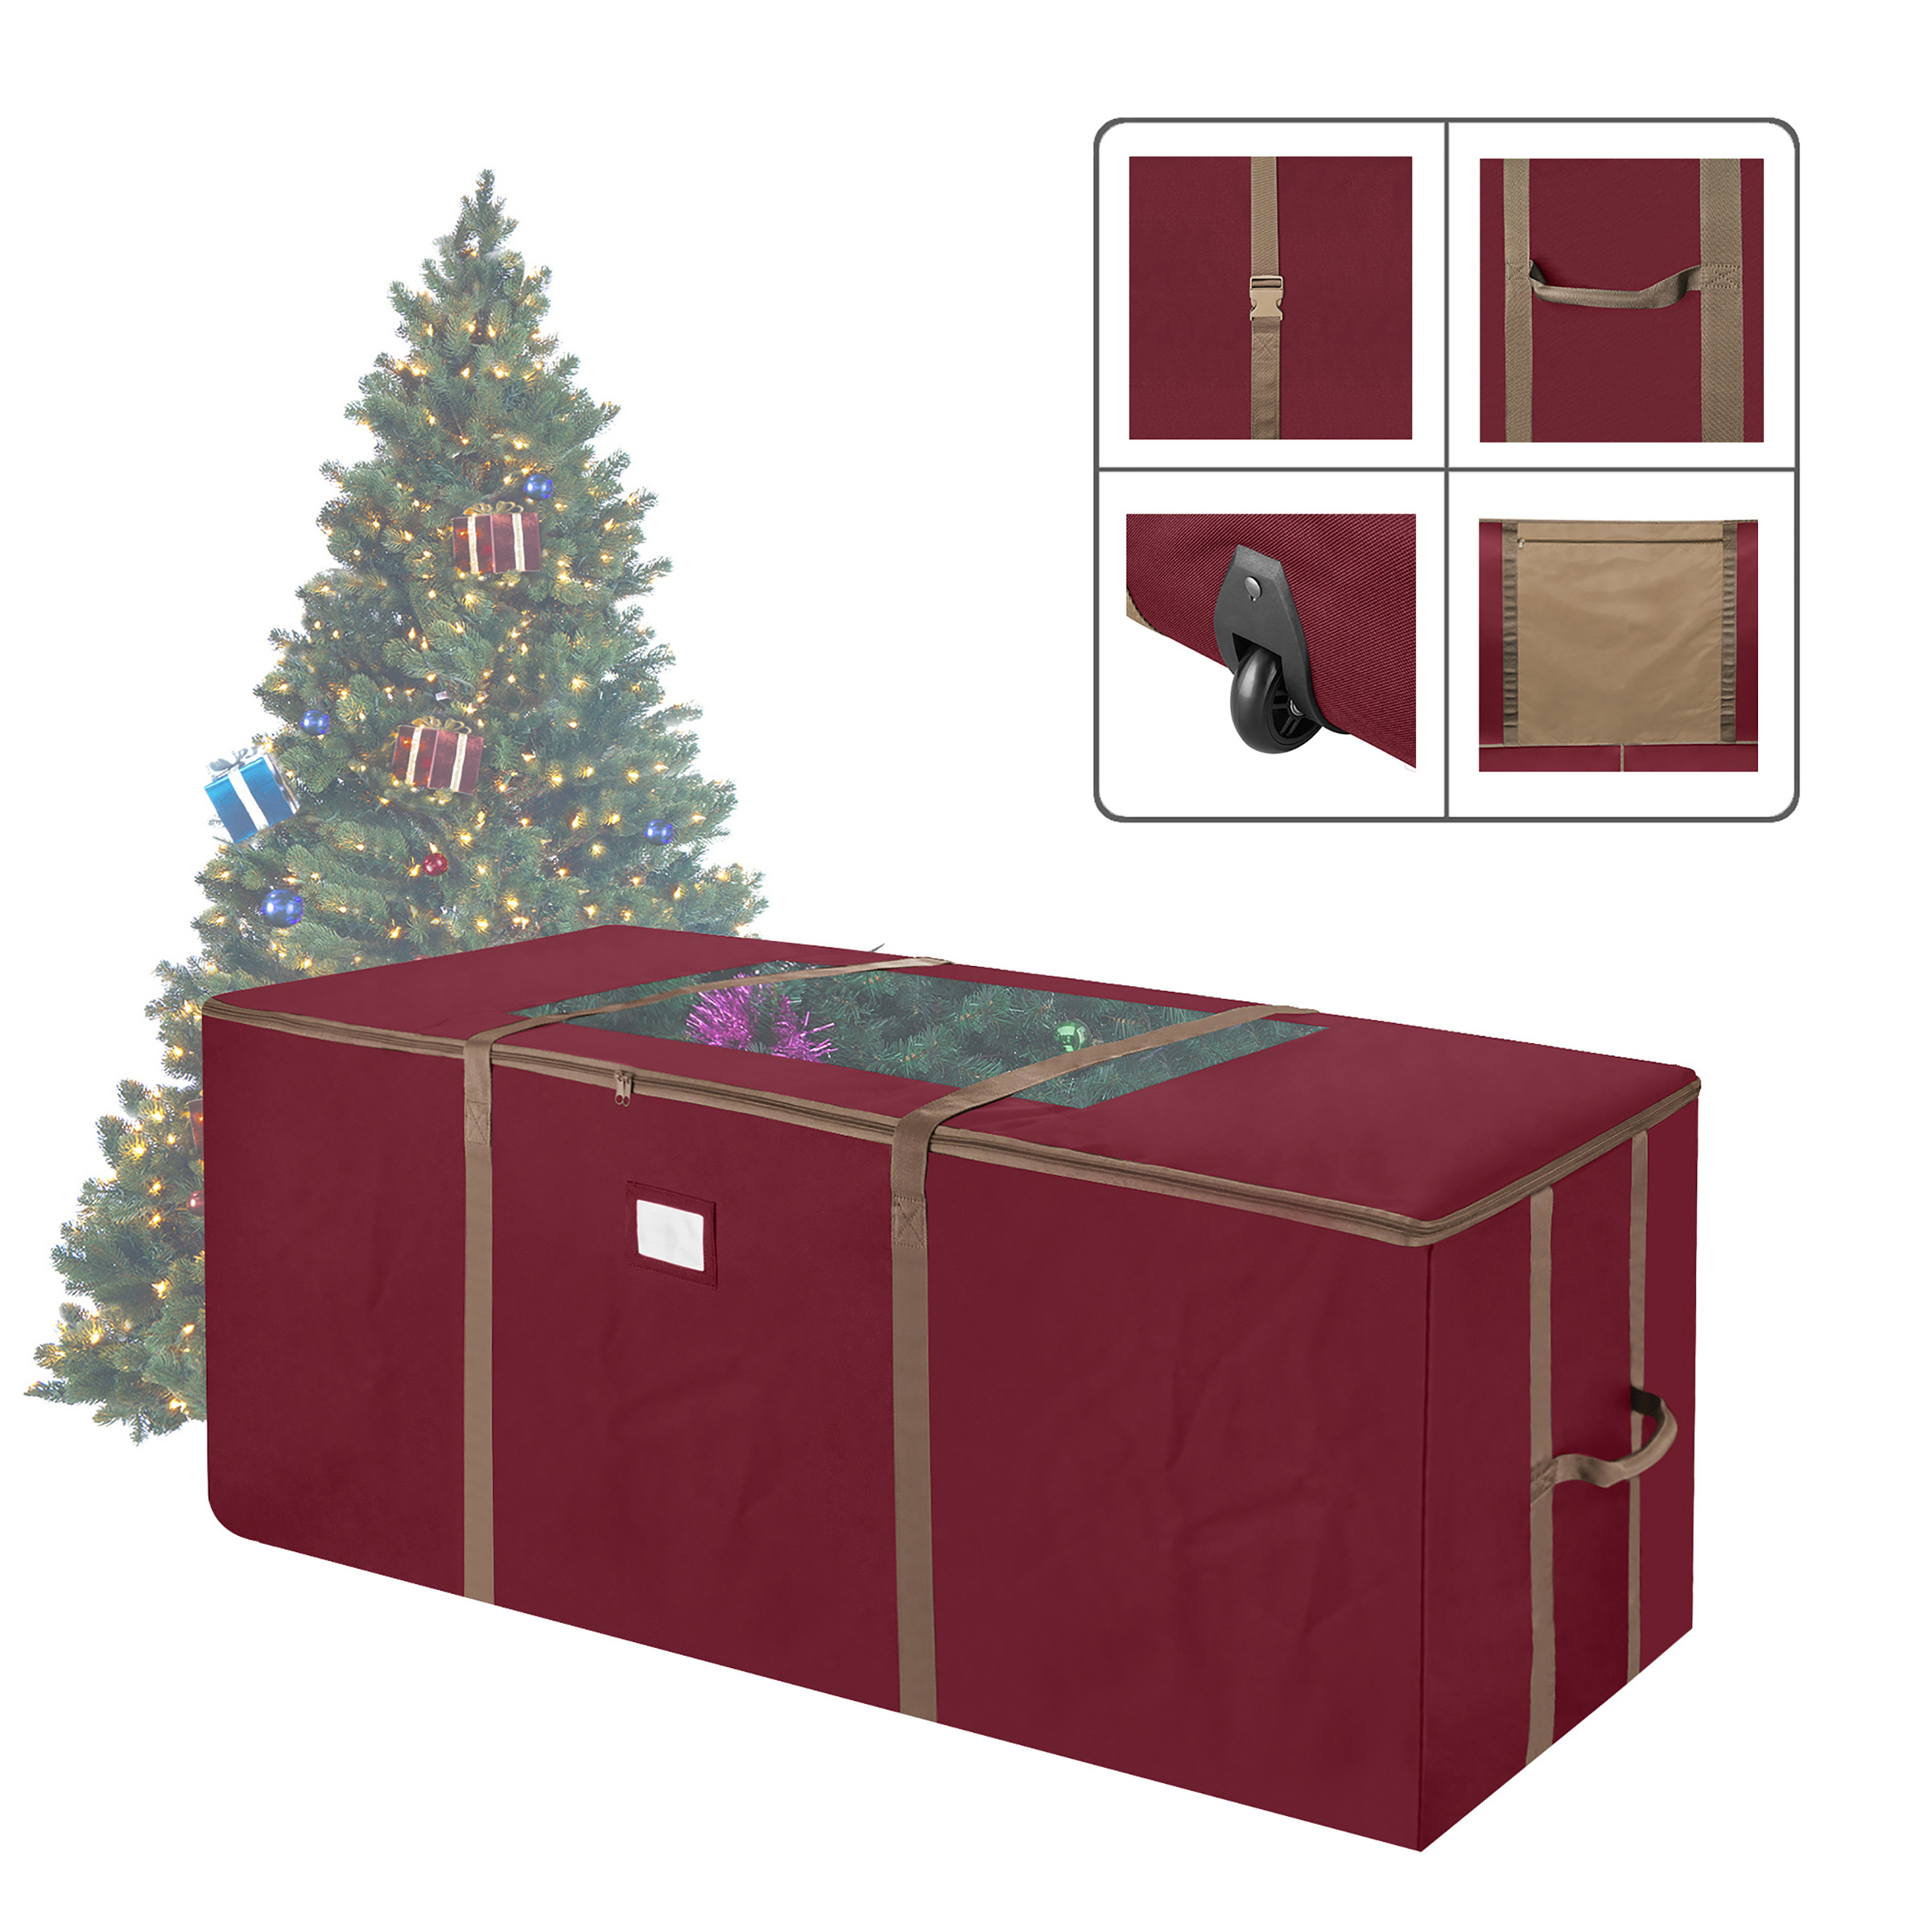 Elf Stor Red Rolling Christmas Tree Storage Duffel Bag w/Window for 9 Ft Tree